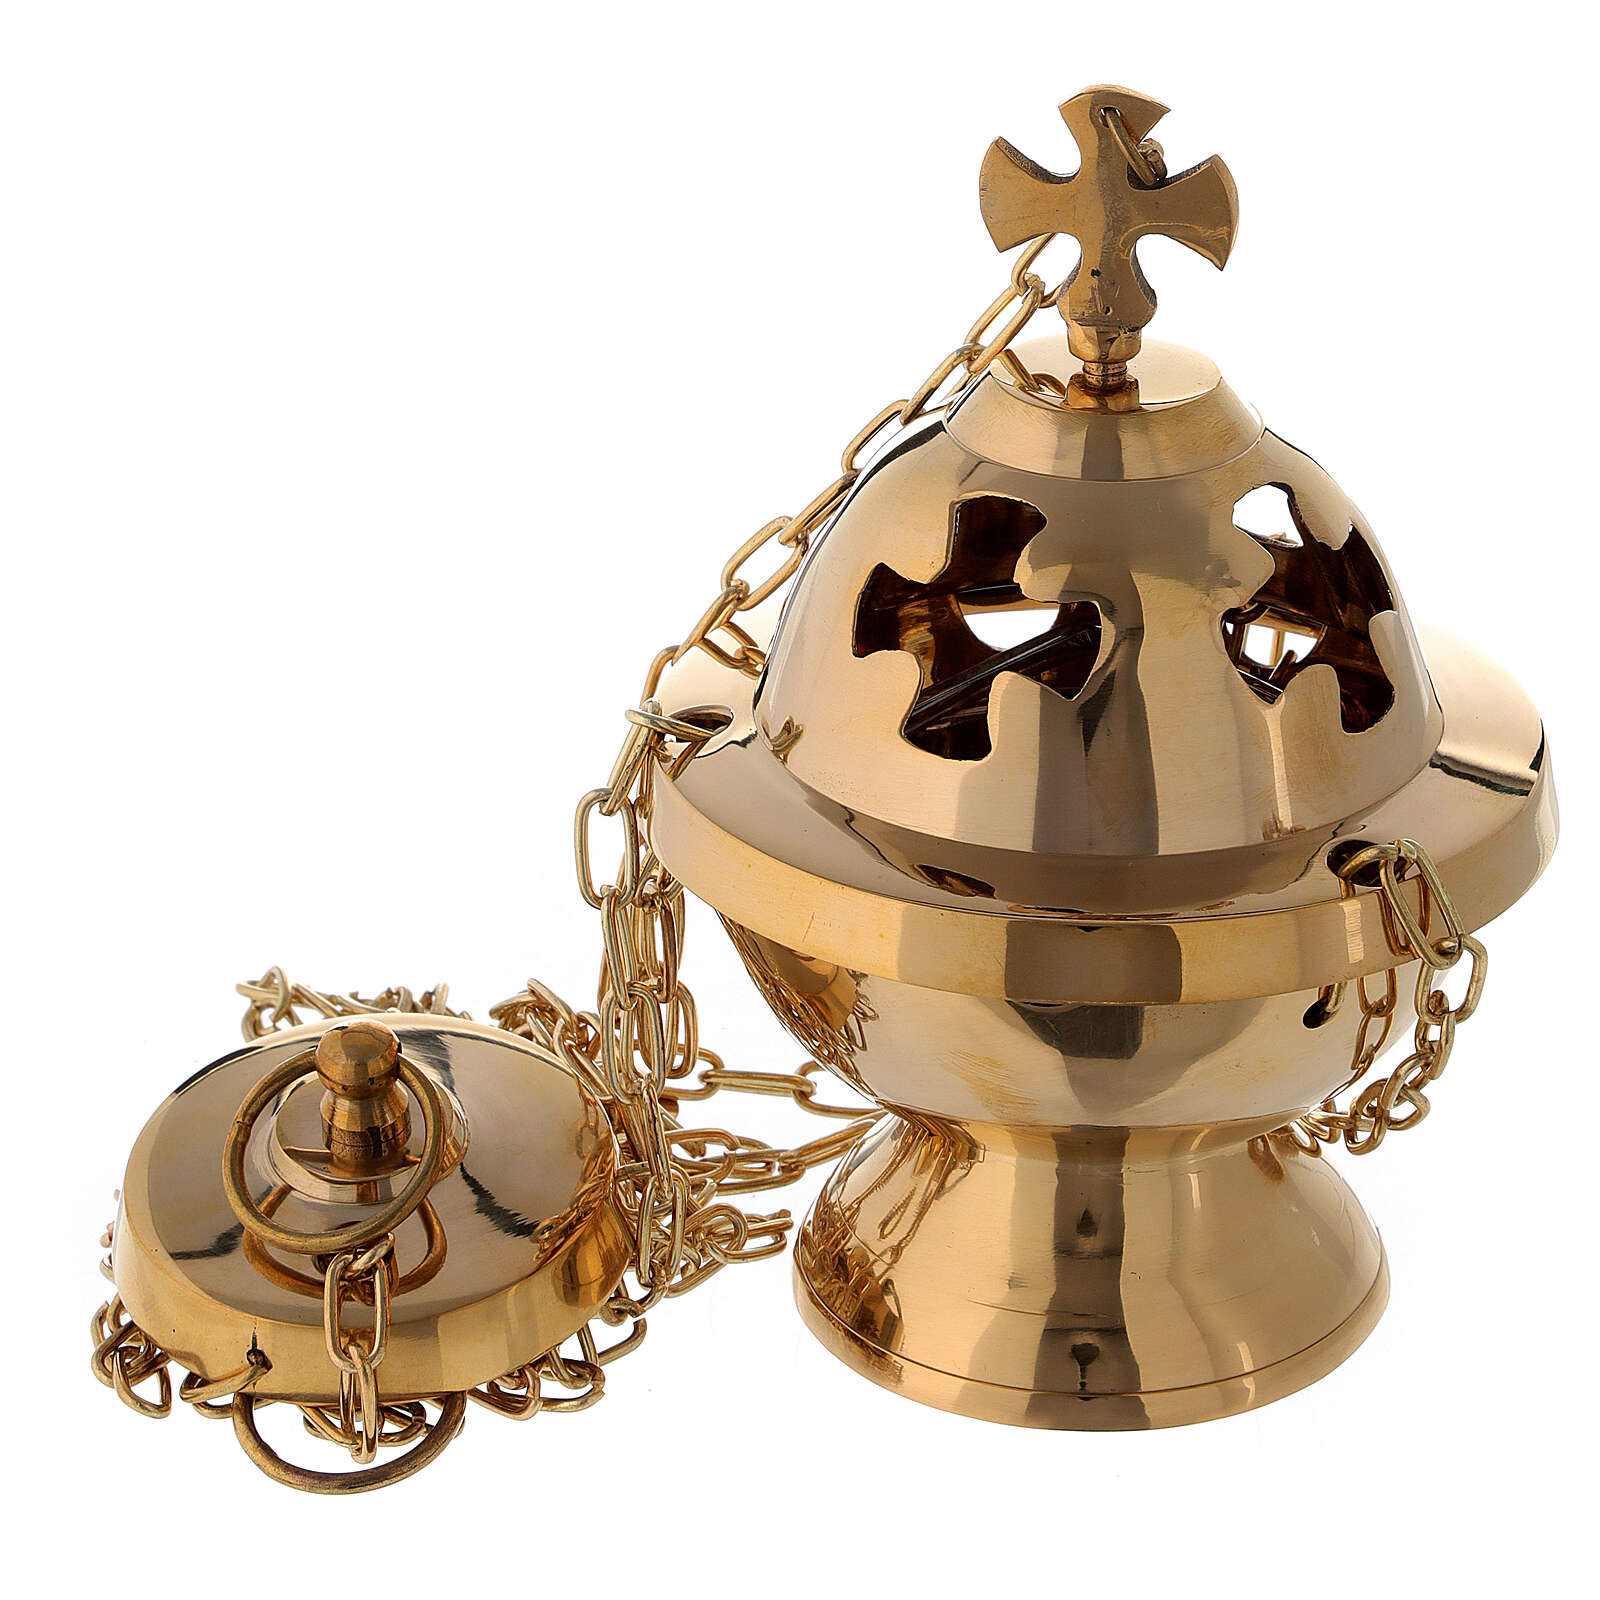 Spherical thurible with maltese cross h 6 in with basket 3